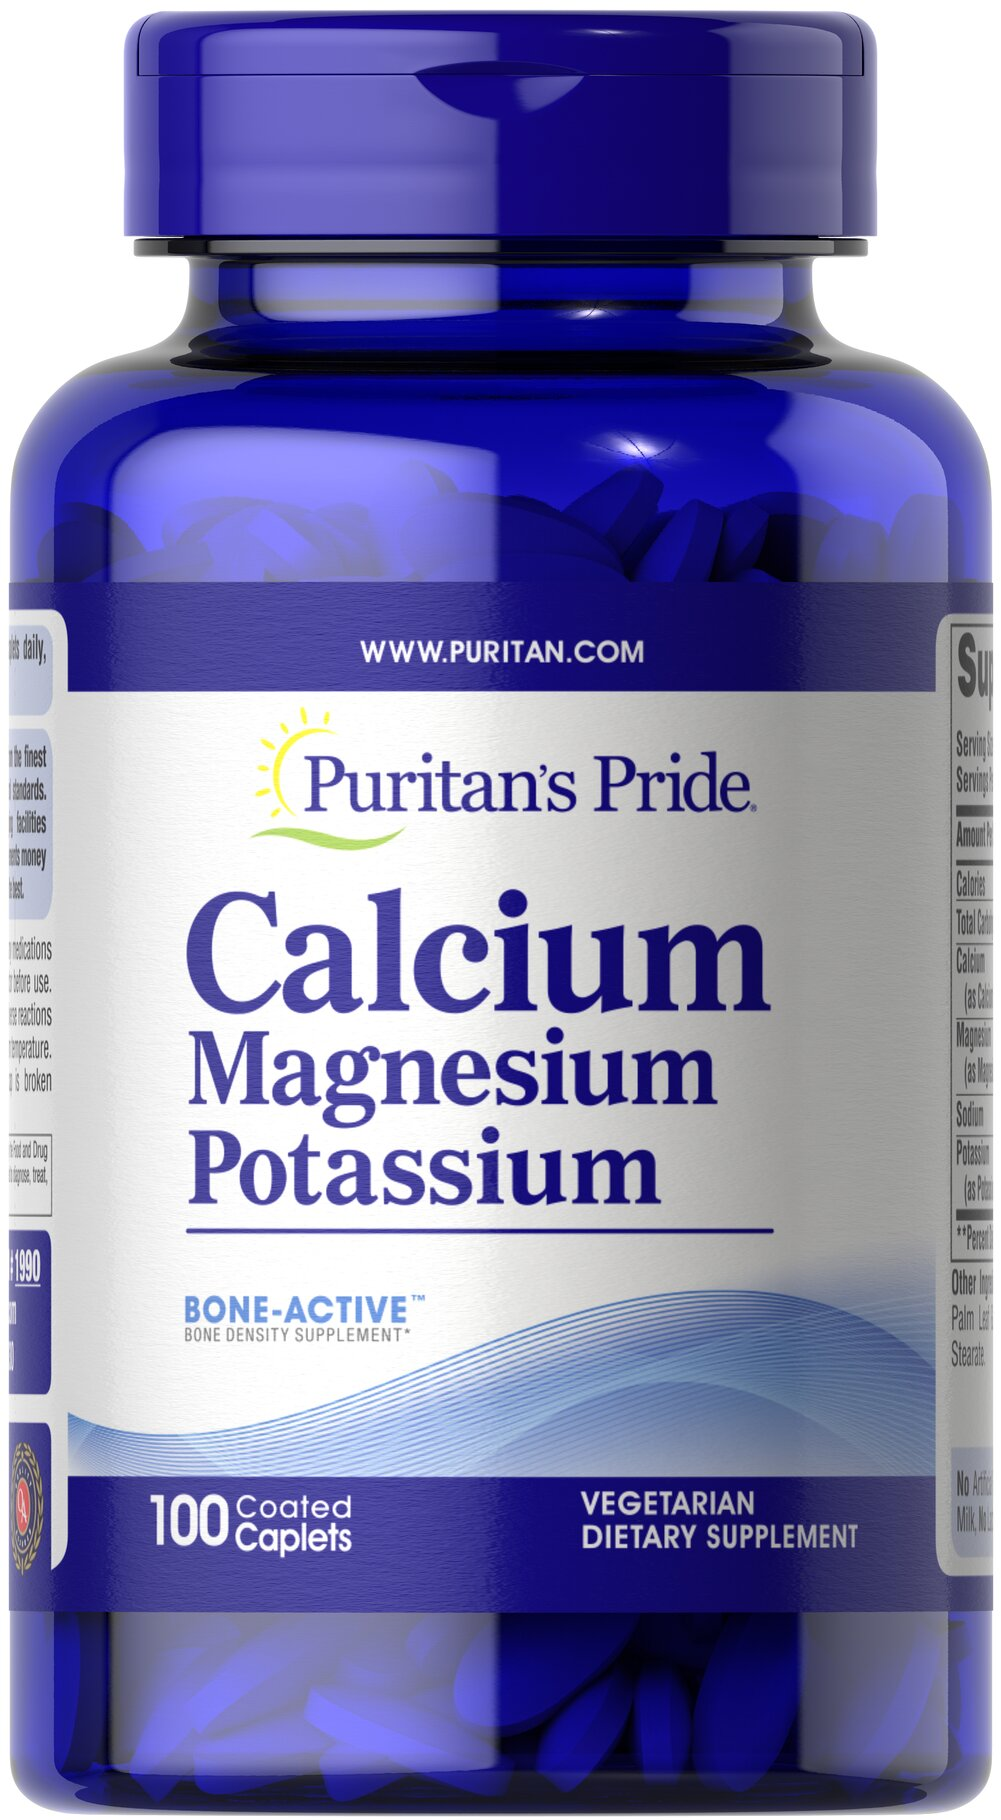 Calcium Magnesium Potassium <p>Cal/Mag/Potassium tablets contain three important minerals (calcium, magnesium, and potassium) that work together synergistically for better absorption and bioavailability.</p><p>Two (2) tablets contain 500 mg Calcium, 500 mg Magnesium and 99 mg Potassium.</p><p></p> 100 Caplets 250 mg/49 mg $10.29